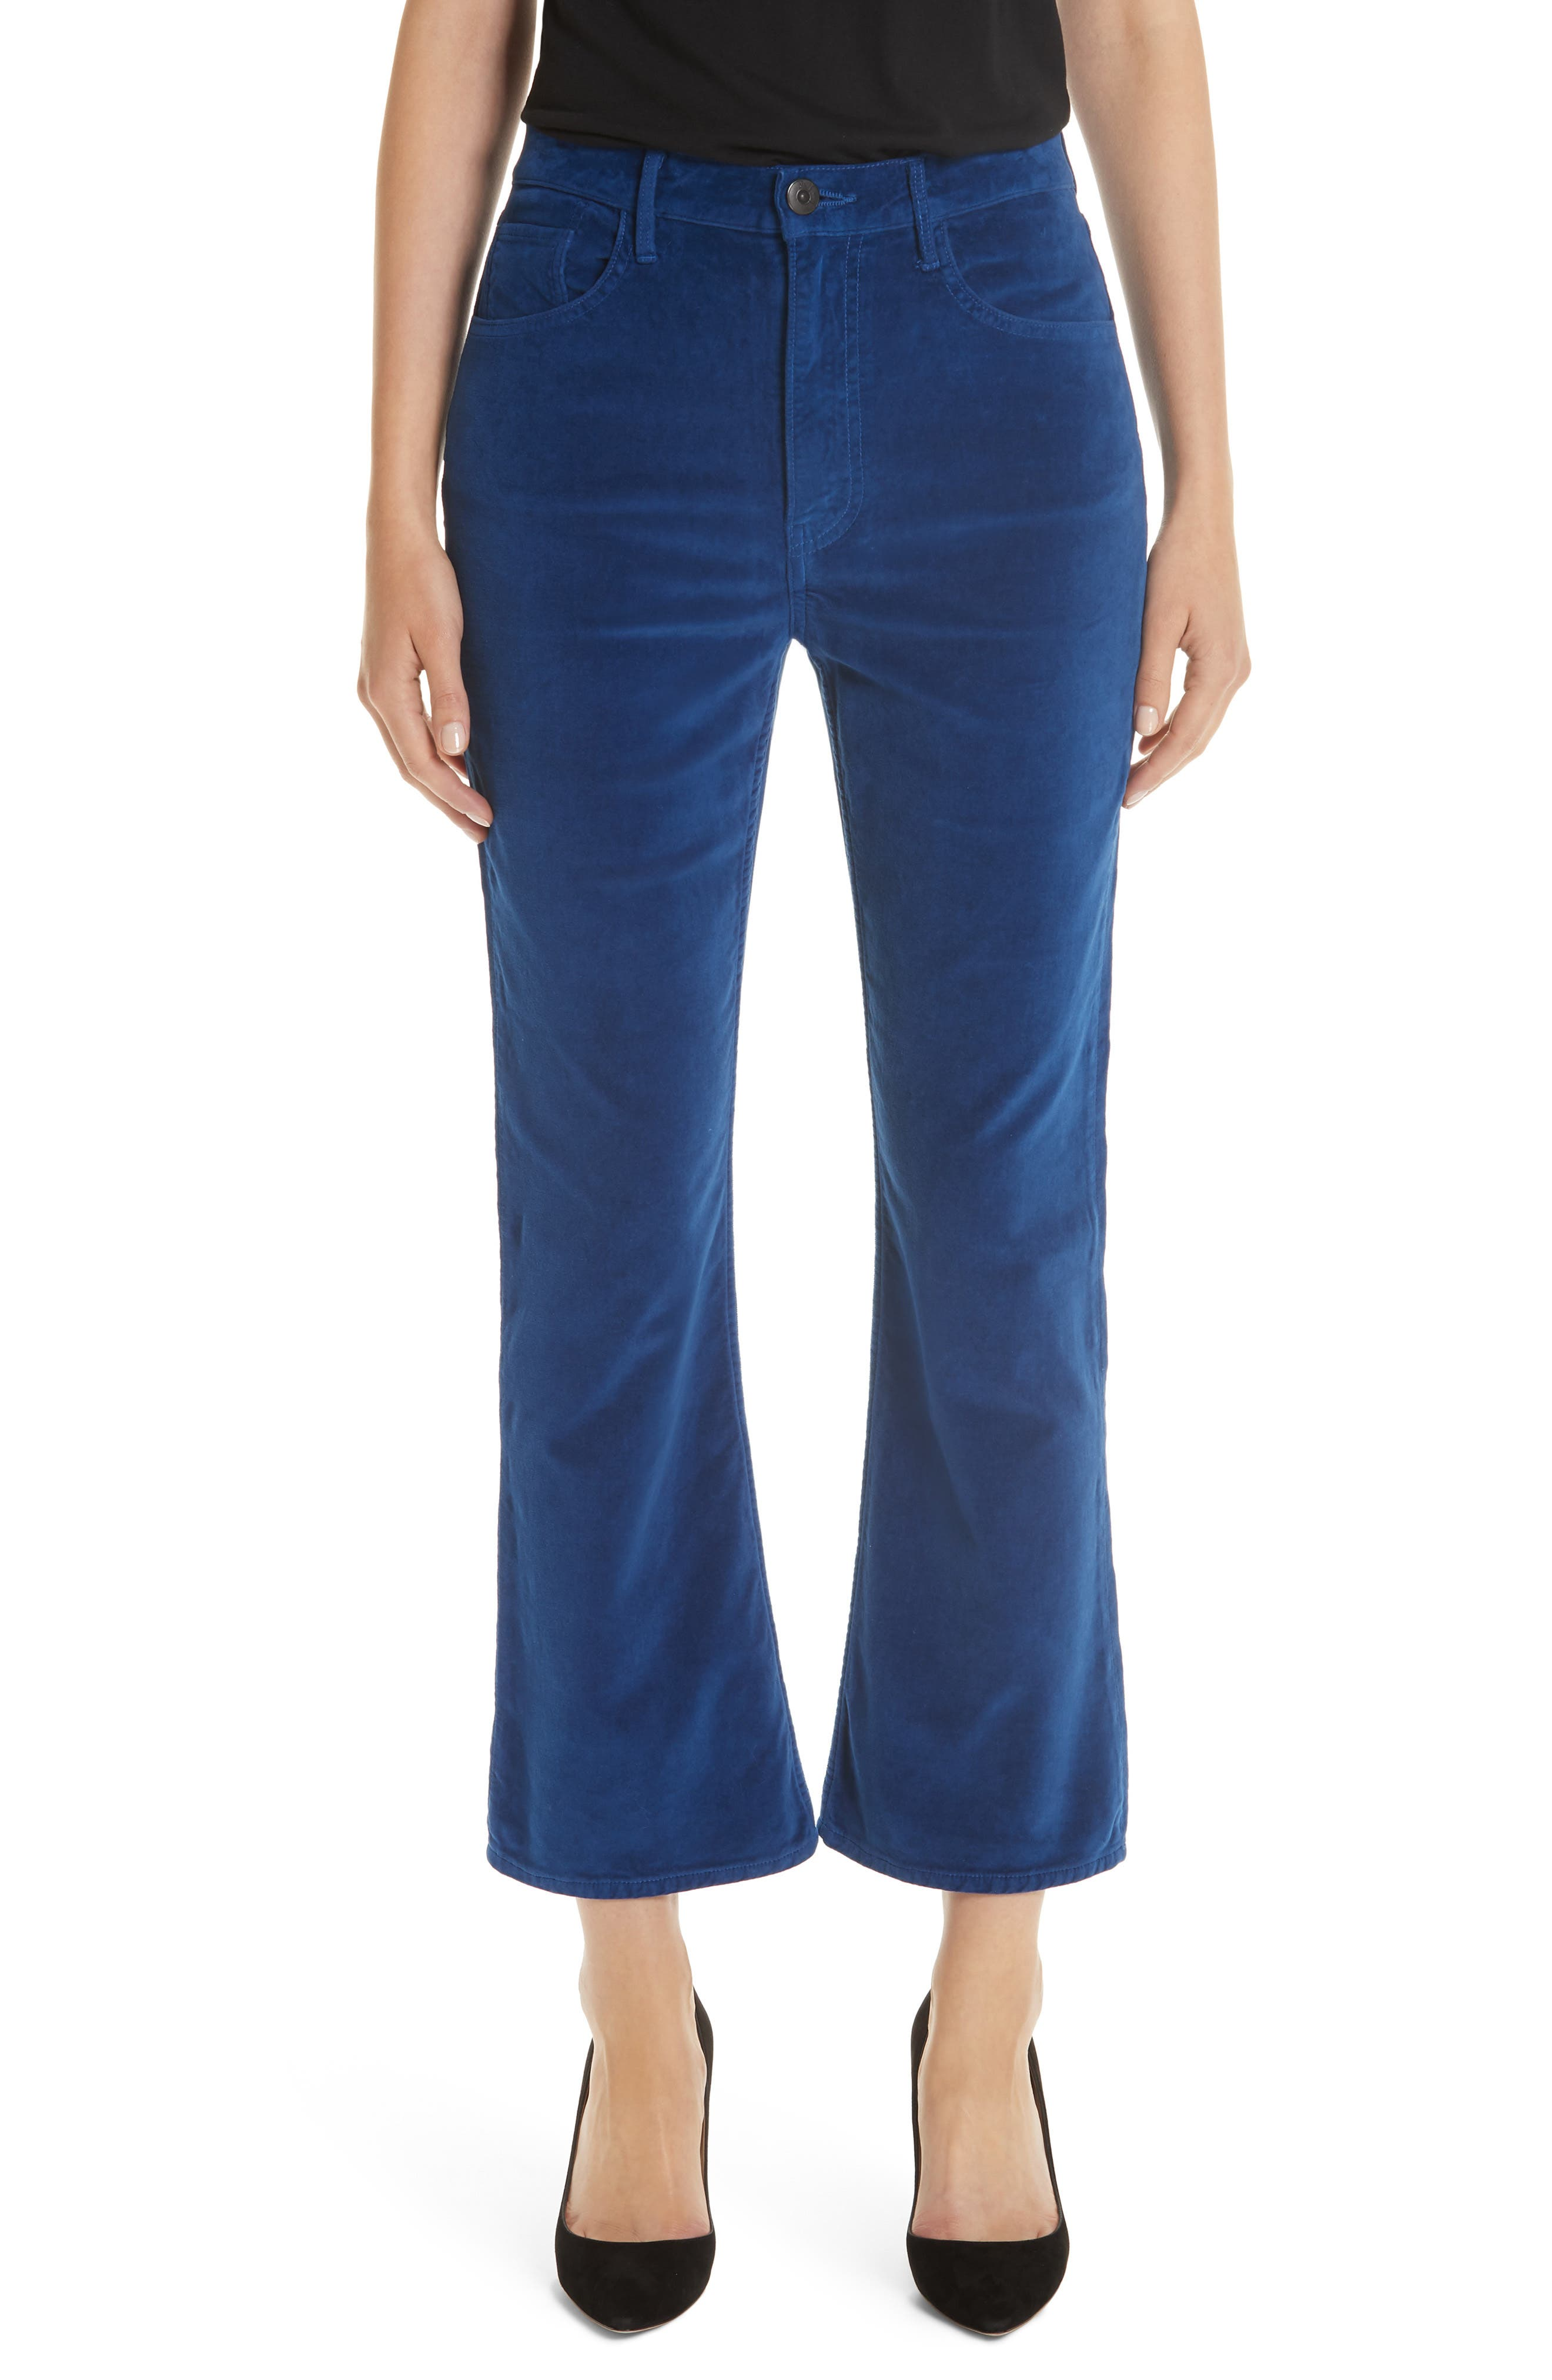 3X1 Nyc Empire Velvet Crop Flare Pants, 3 - Blue